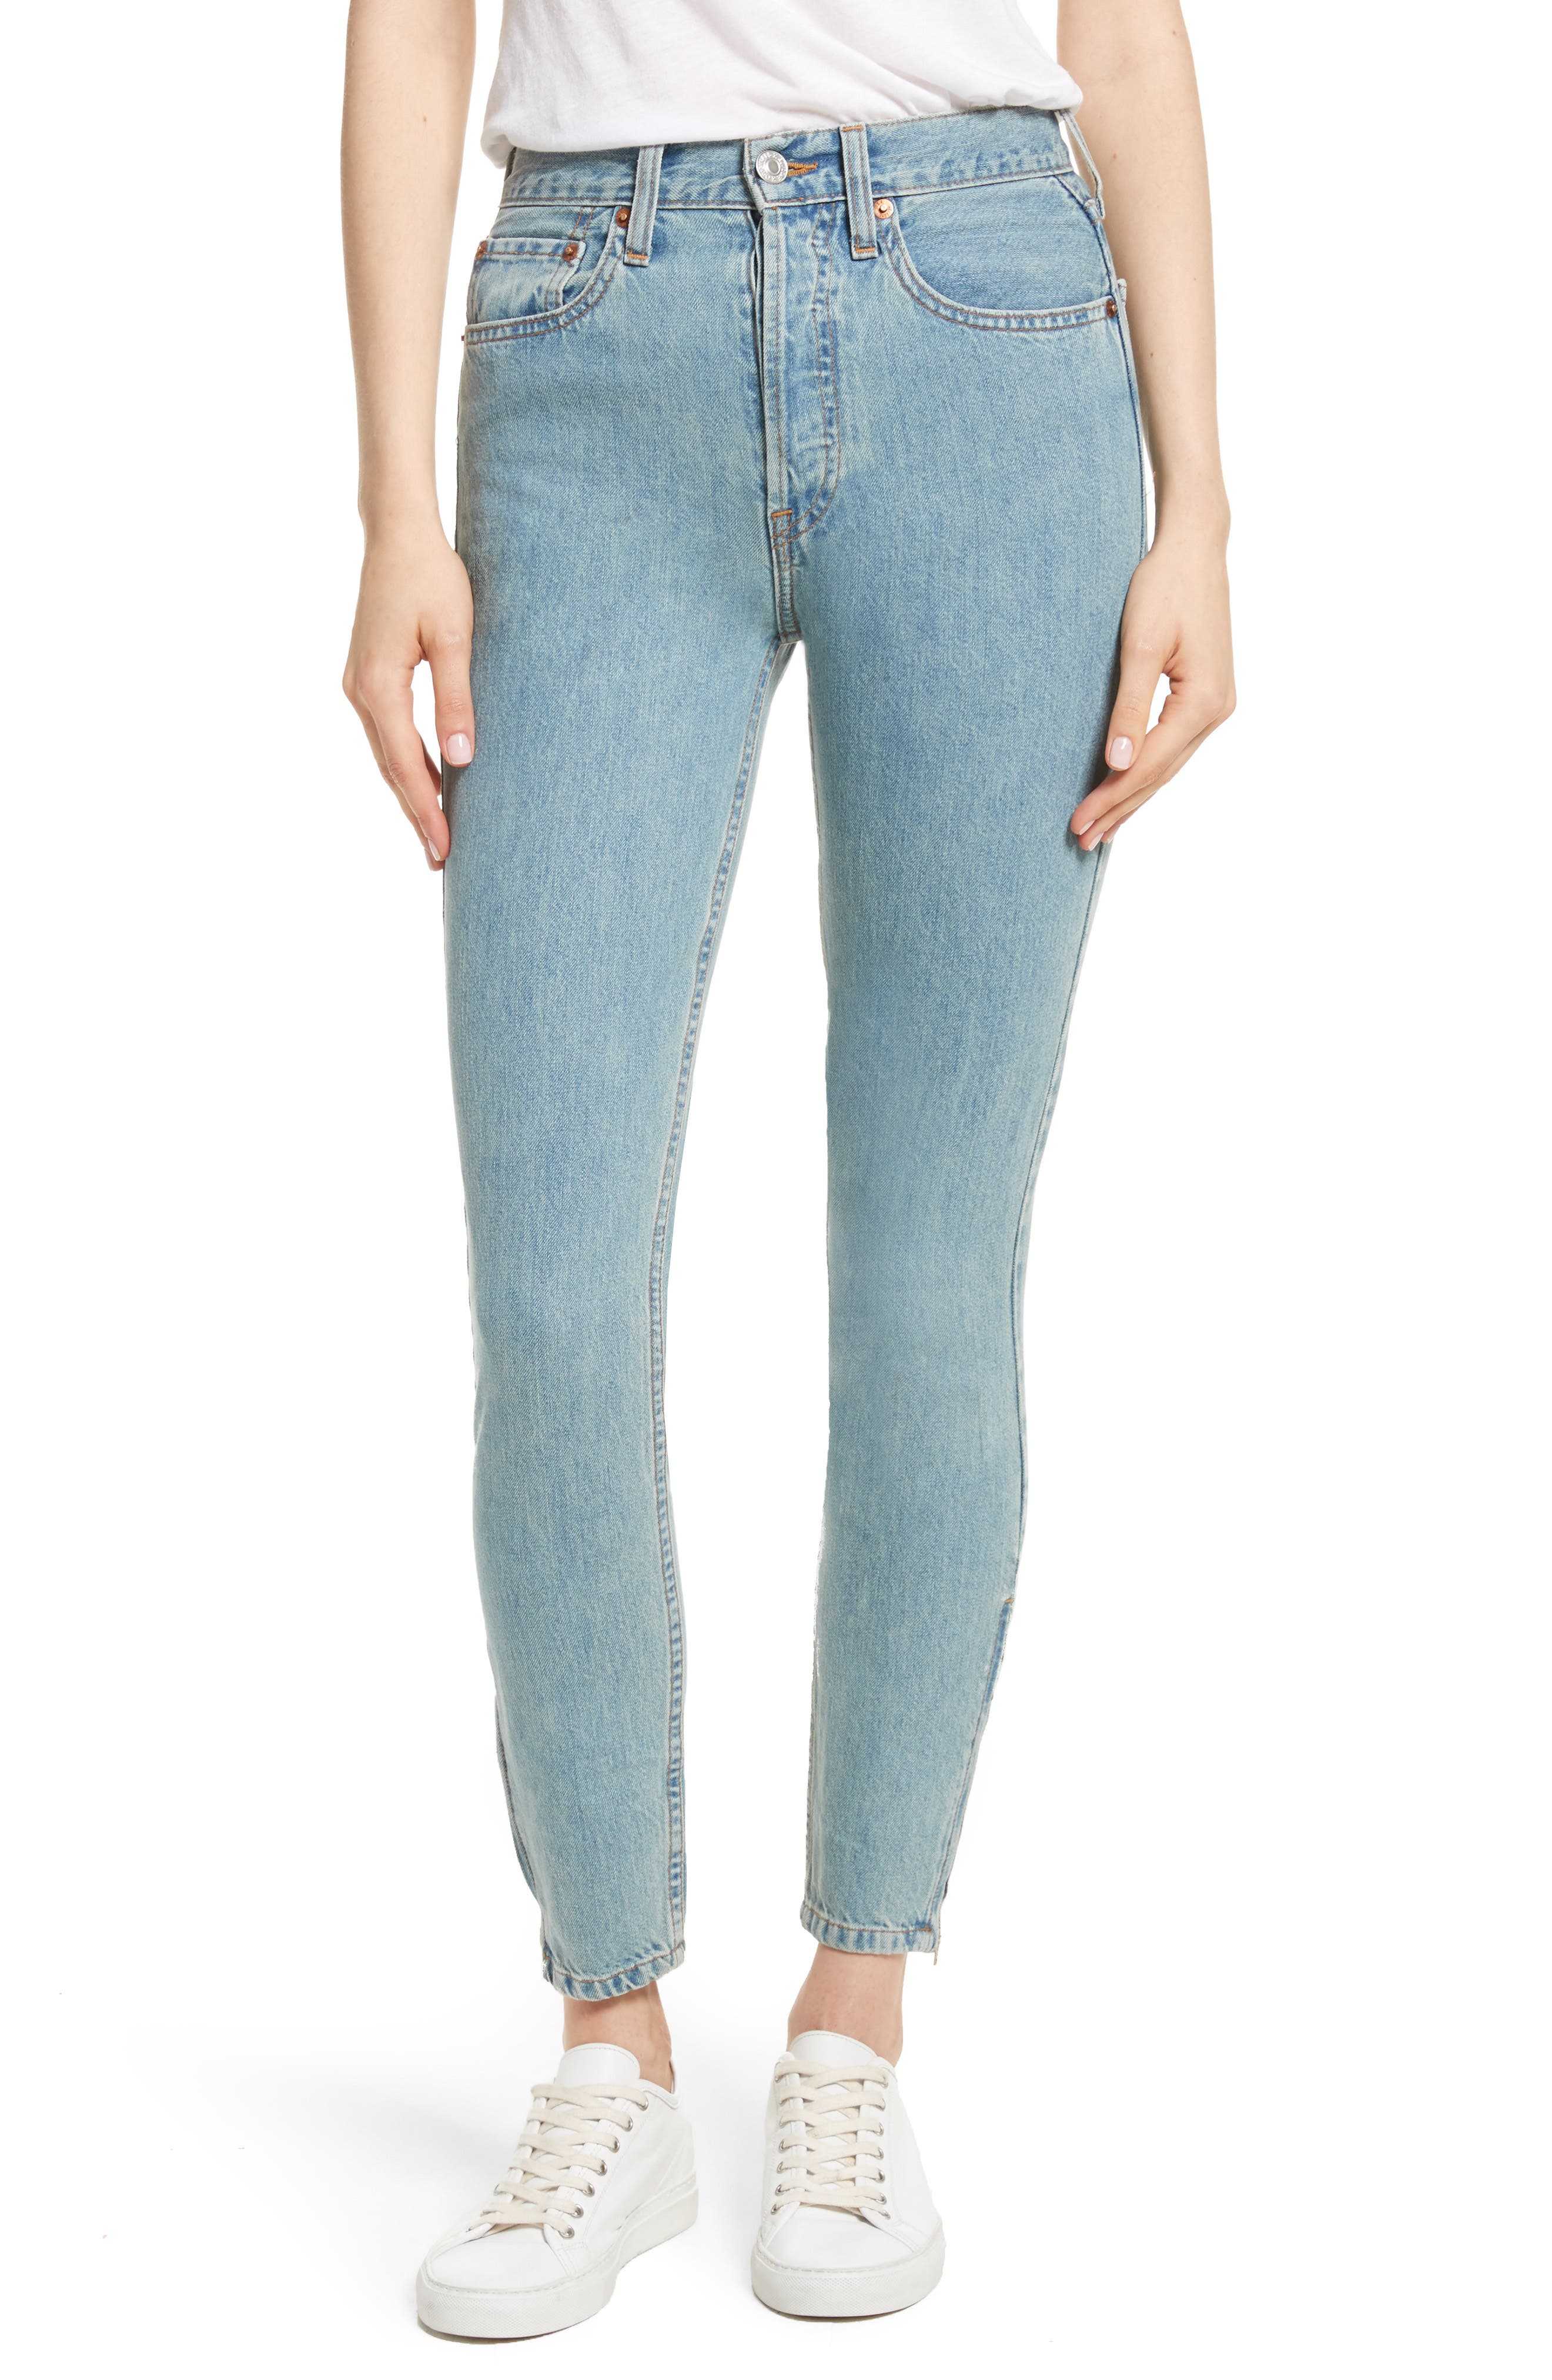 Main Image - Re/Done Originals High Waist Ankle Zip Jeans